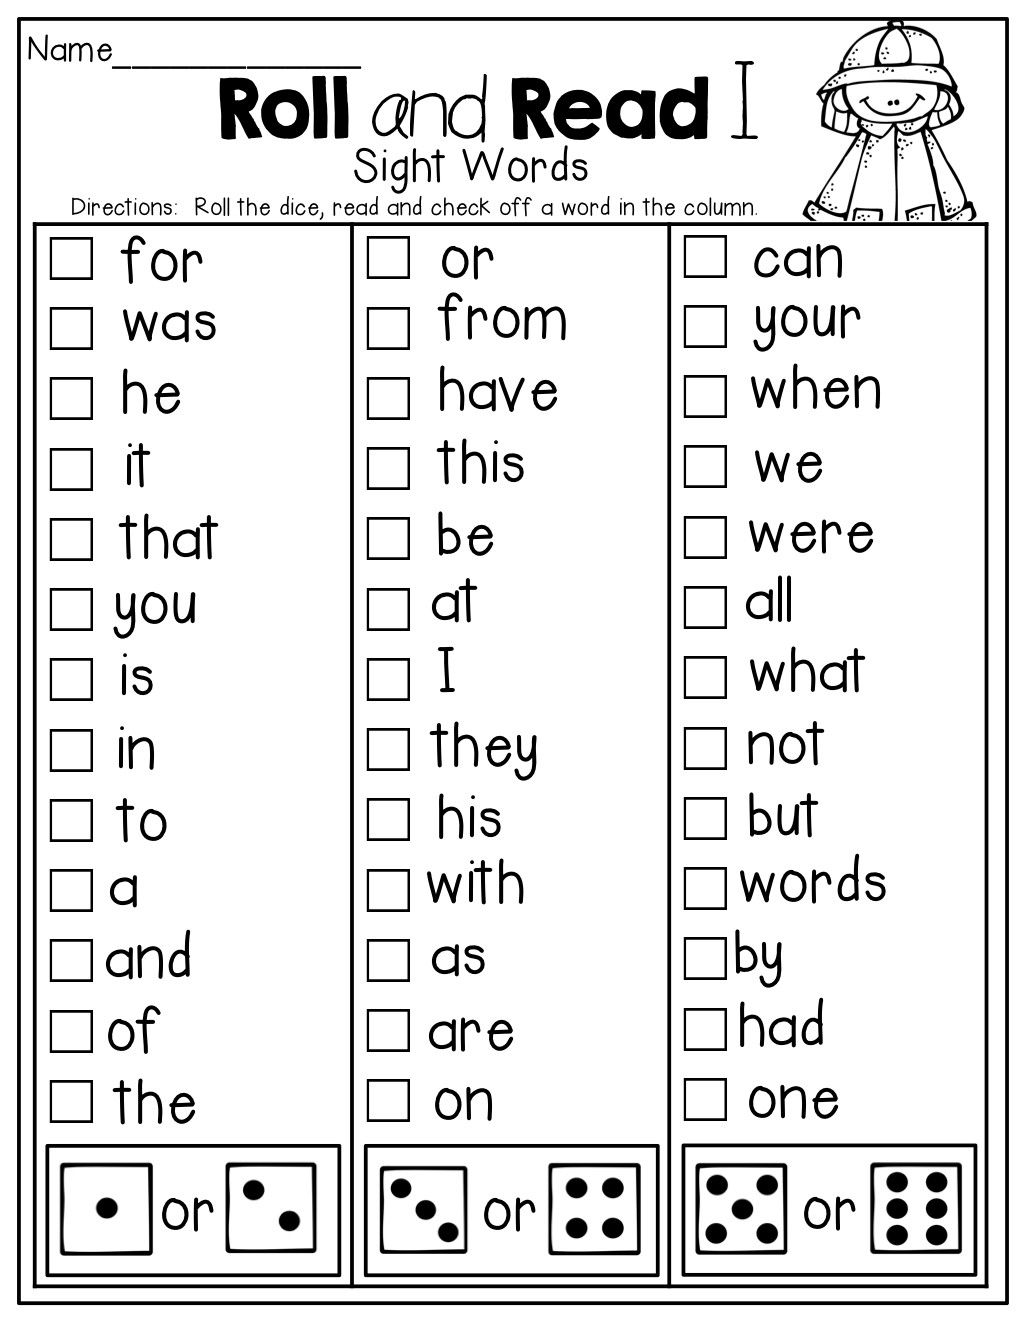 5 Circle Sight Words Worksheets in 2020 (With images